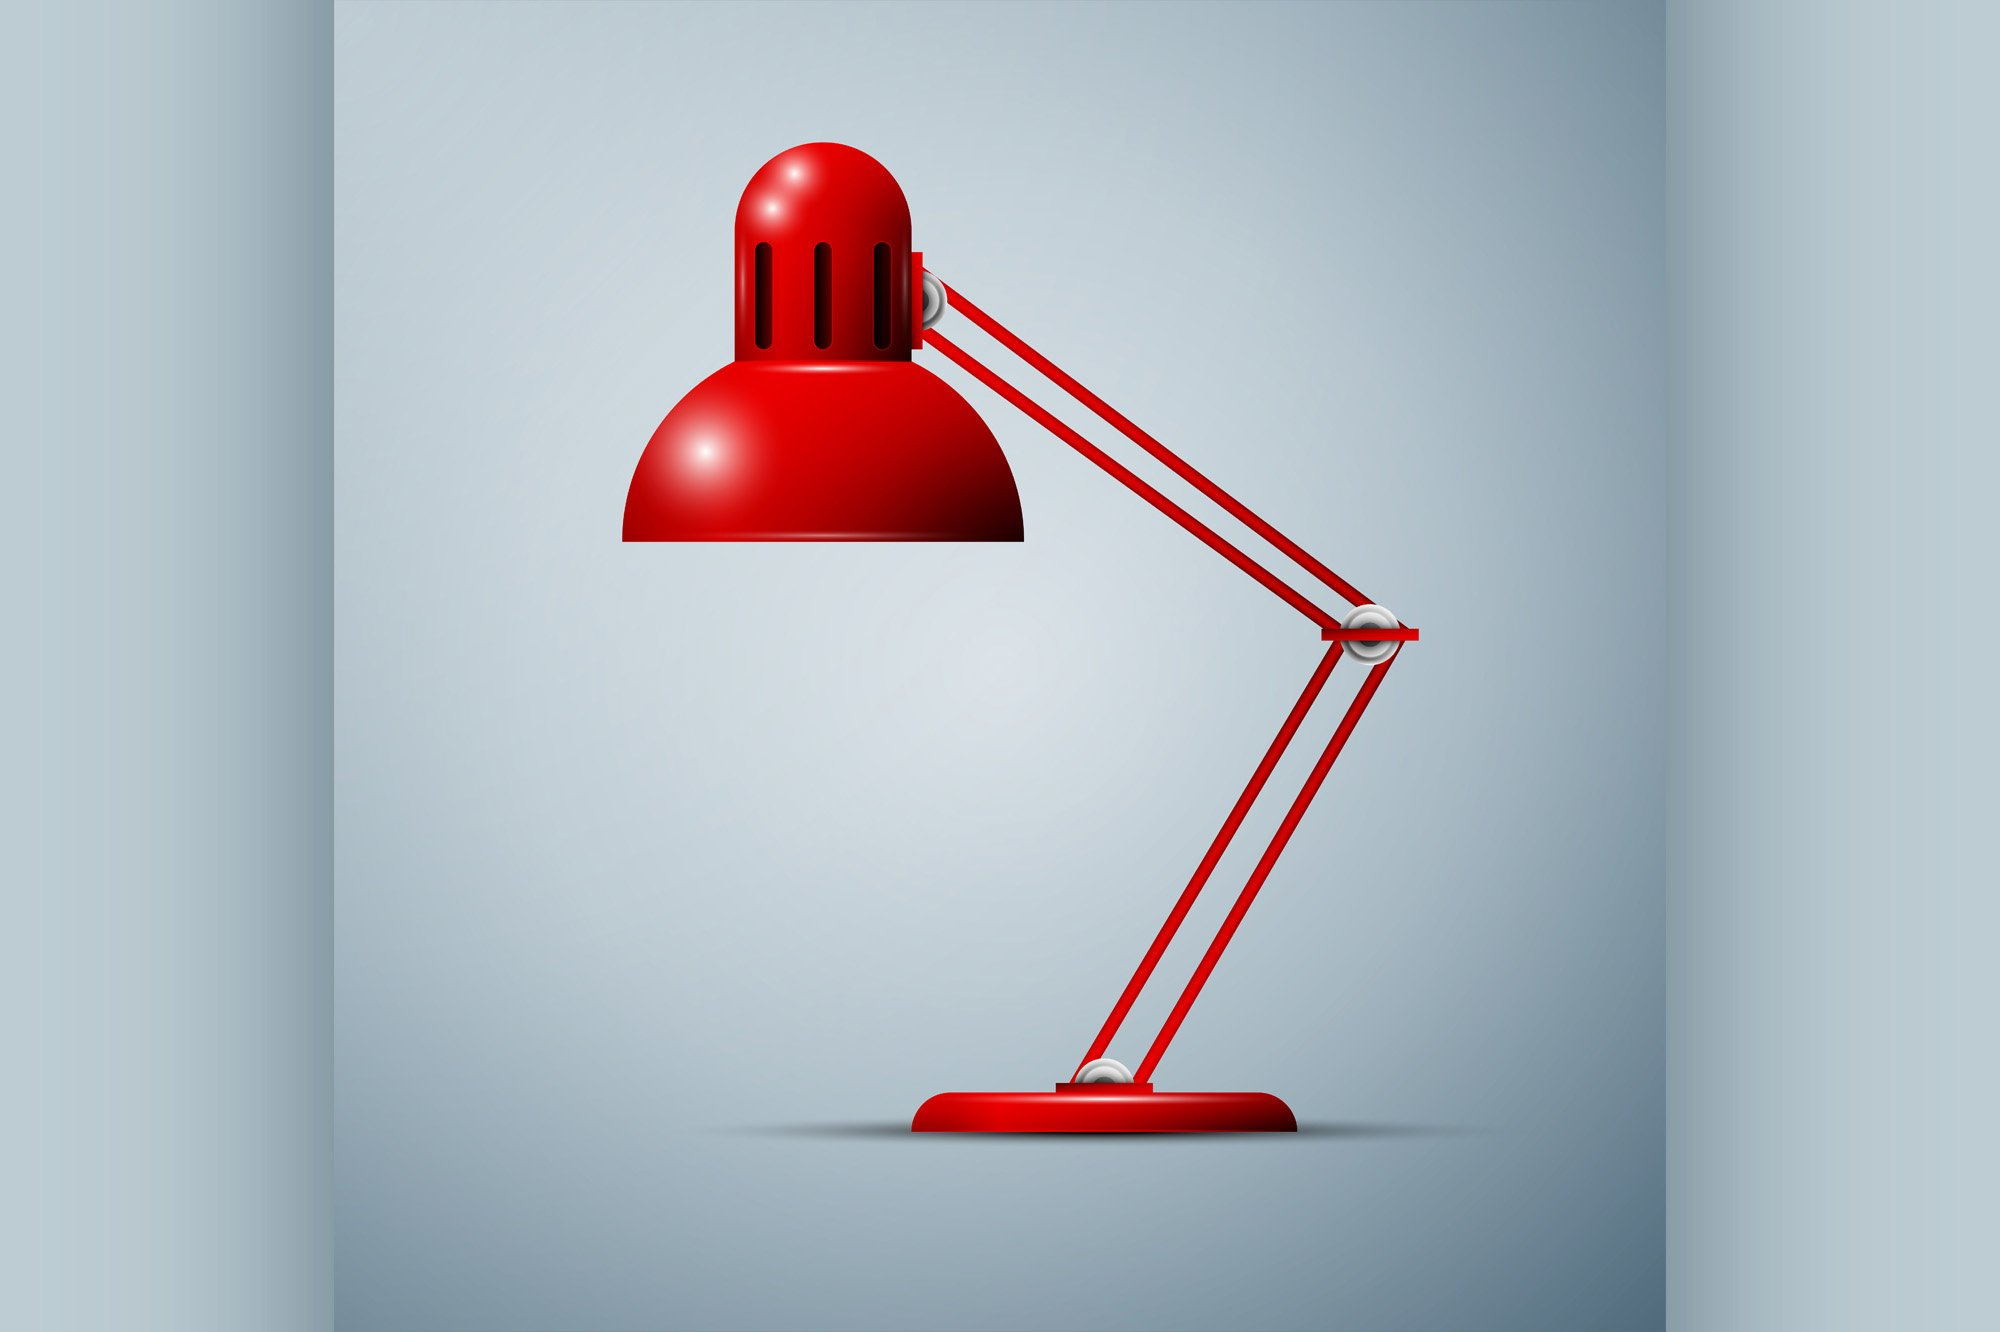 Red desk lamp example image 1